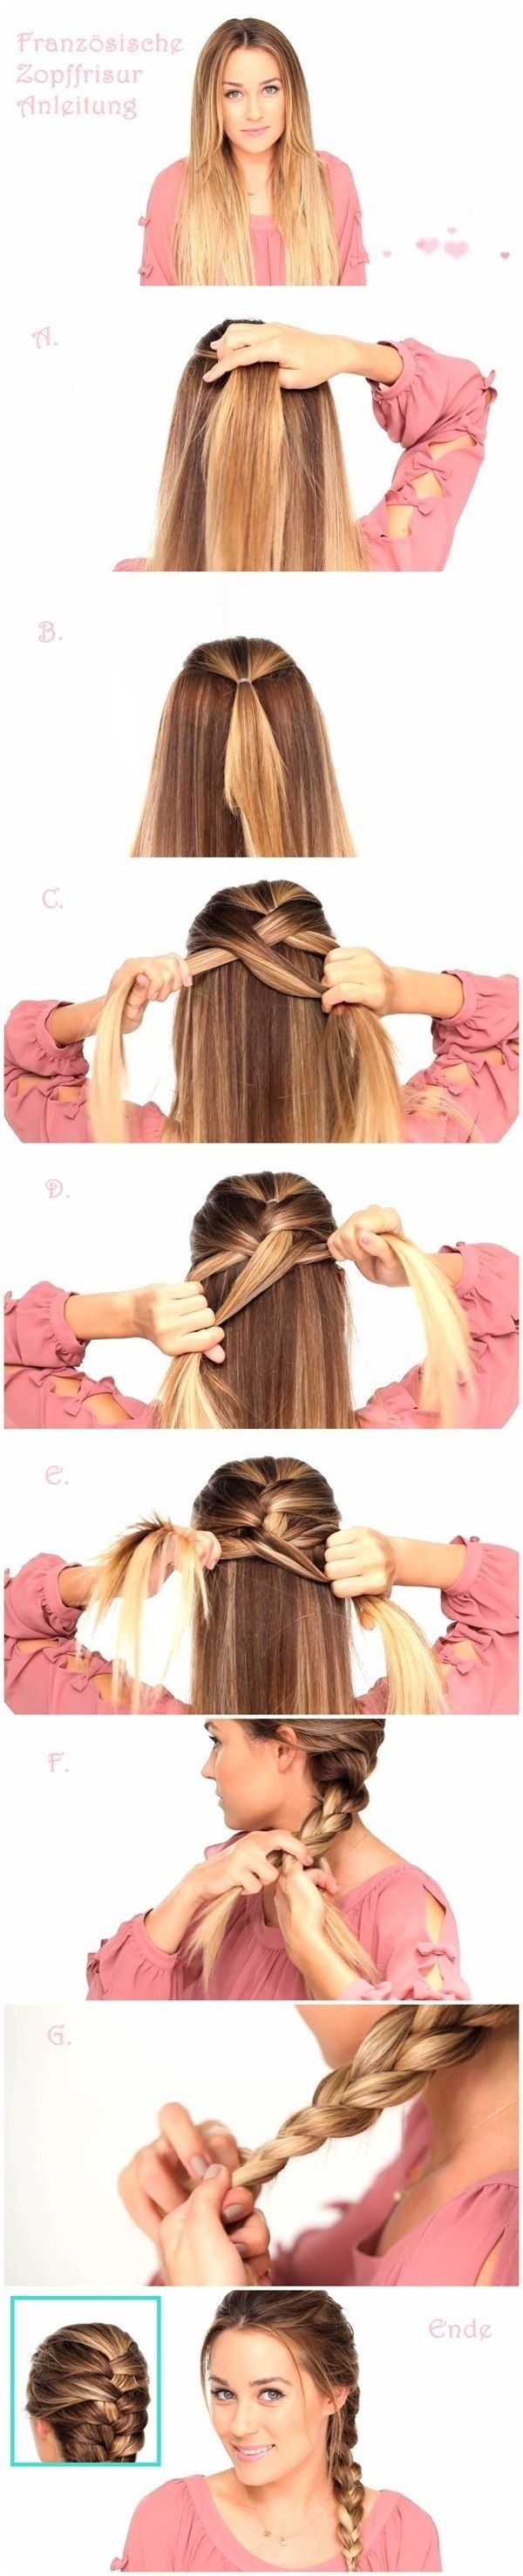 Love Lauren Conrad! And this is the classis-ist (is that a word?) braid ever, and almost everyone looks good in it! :)